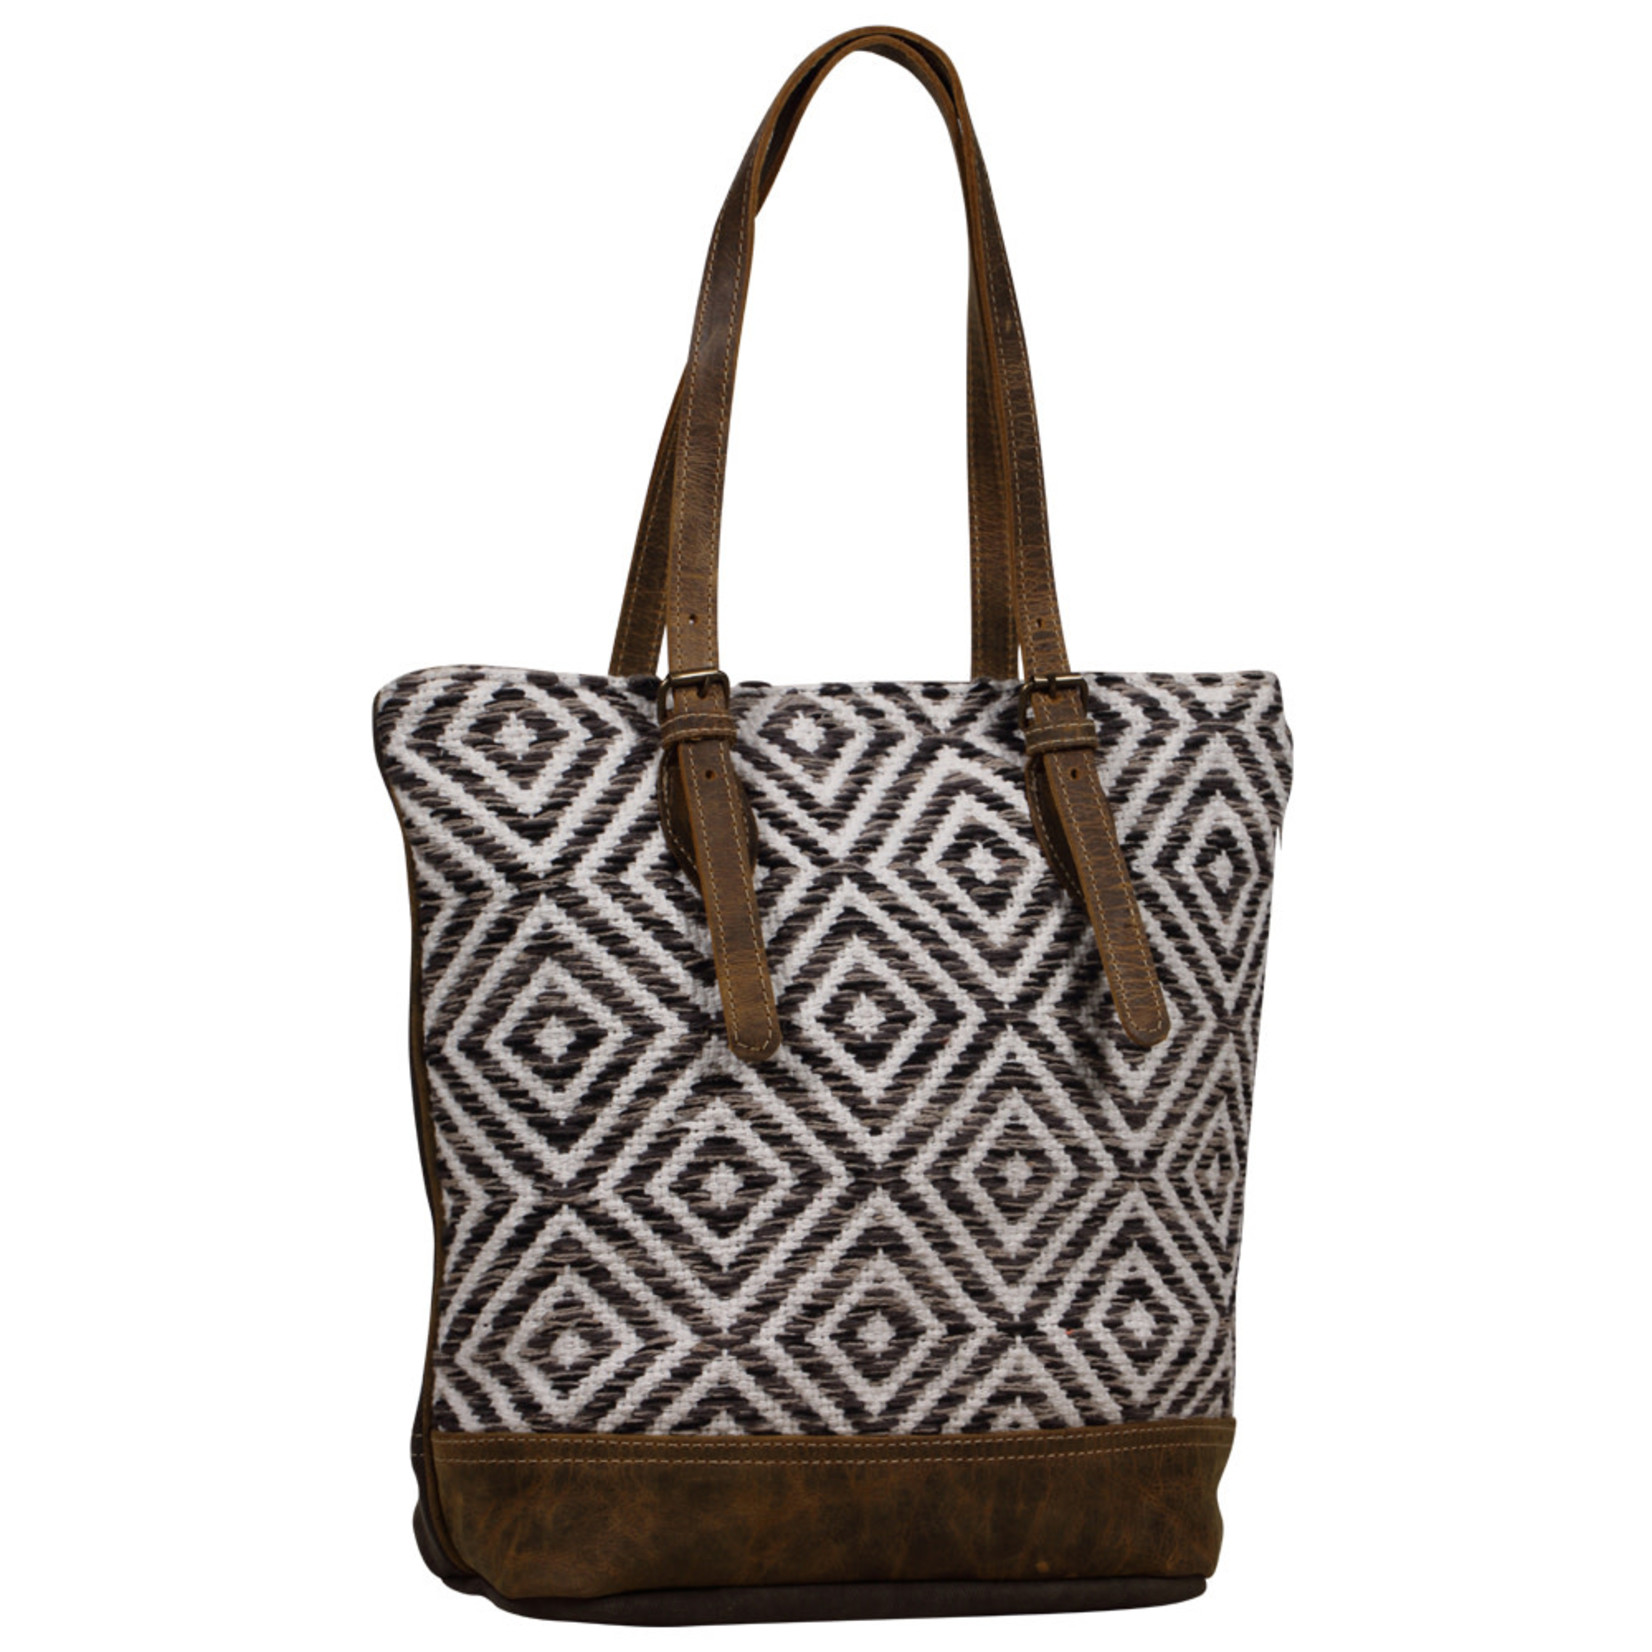 Myra Bags S-2022 Entwined Tote Bag